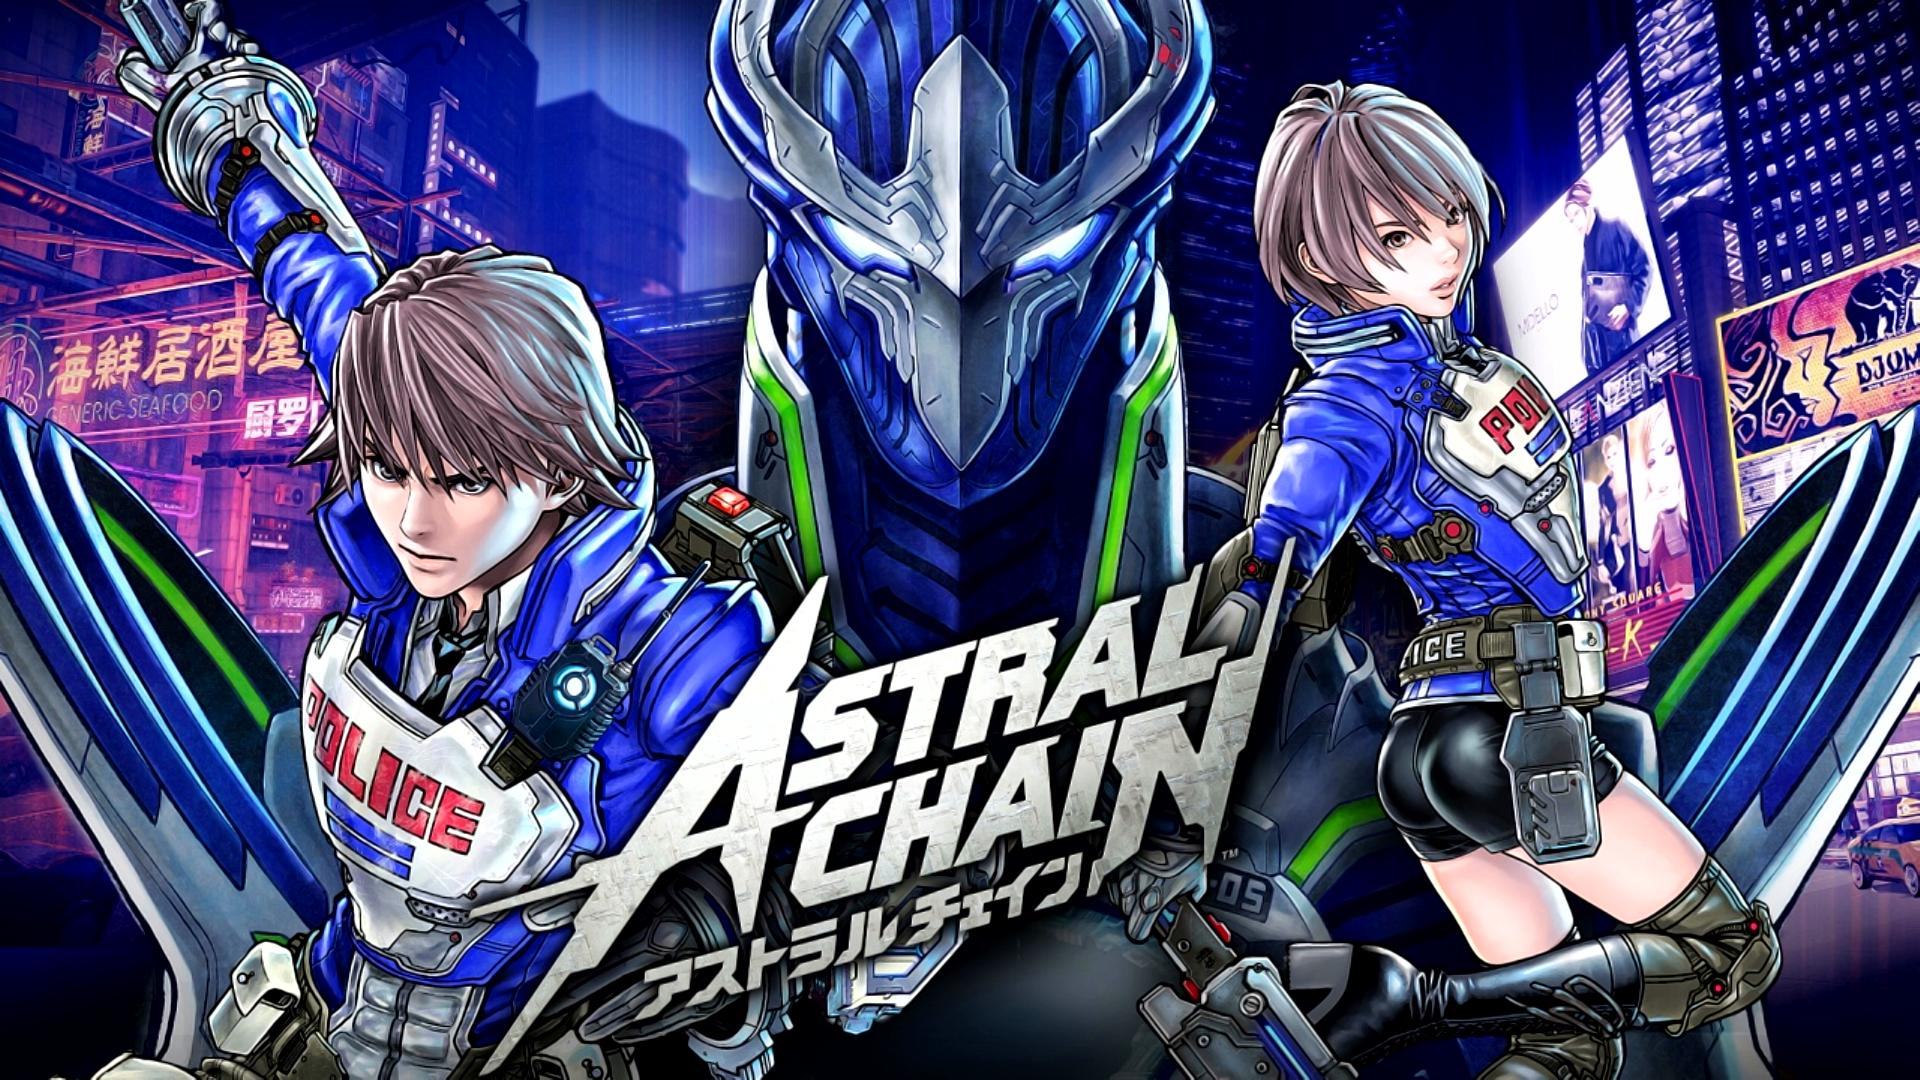 Astral Chain Video game